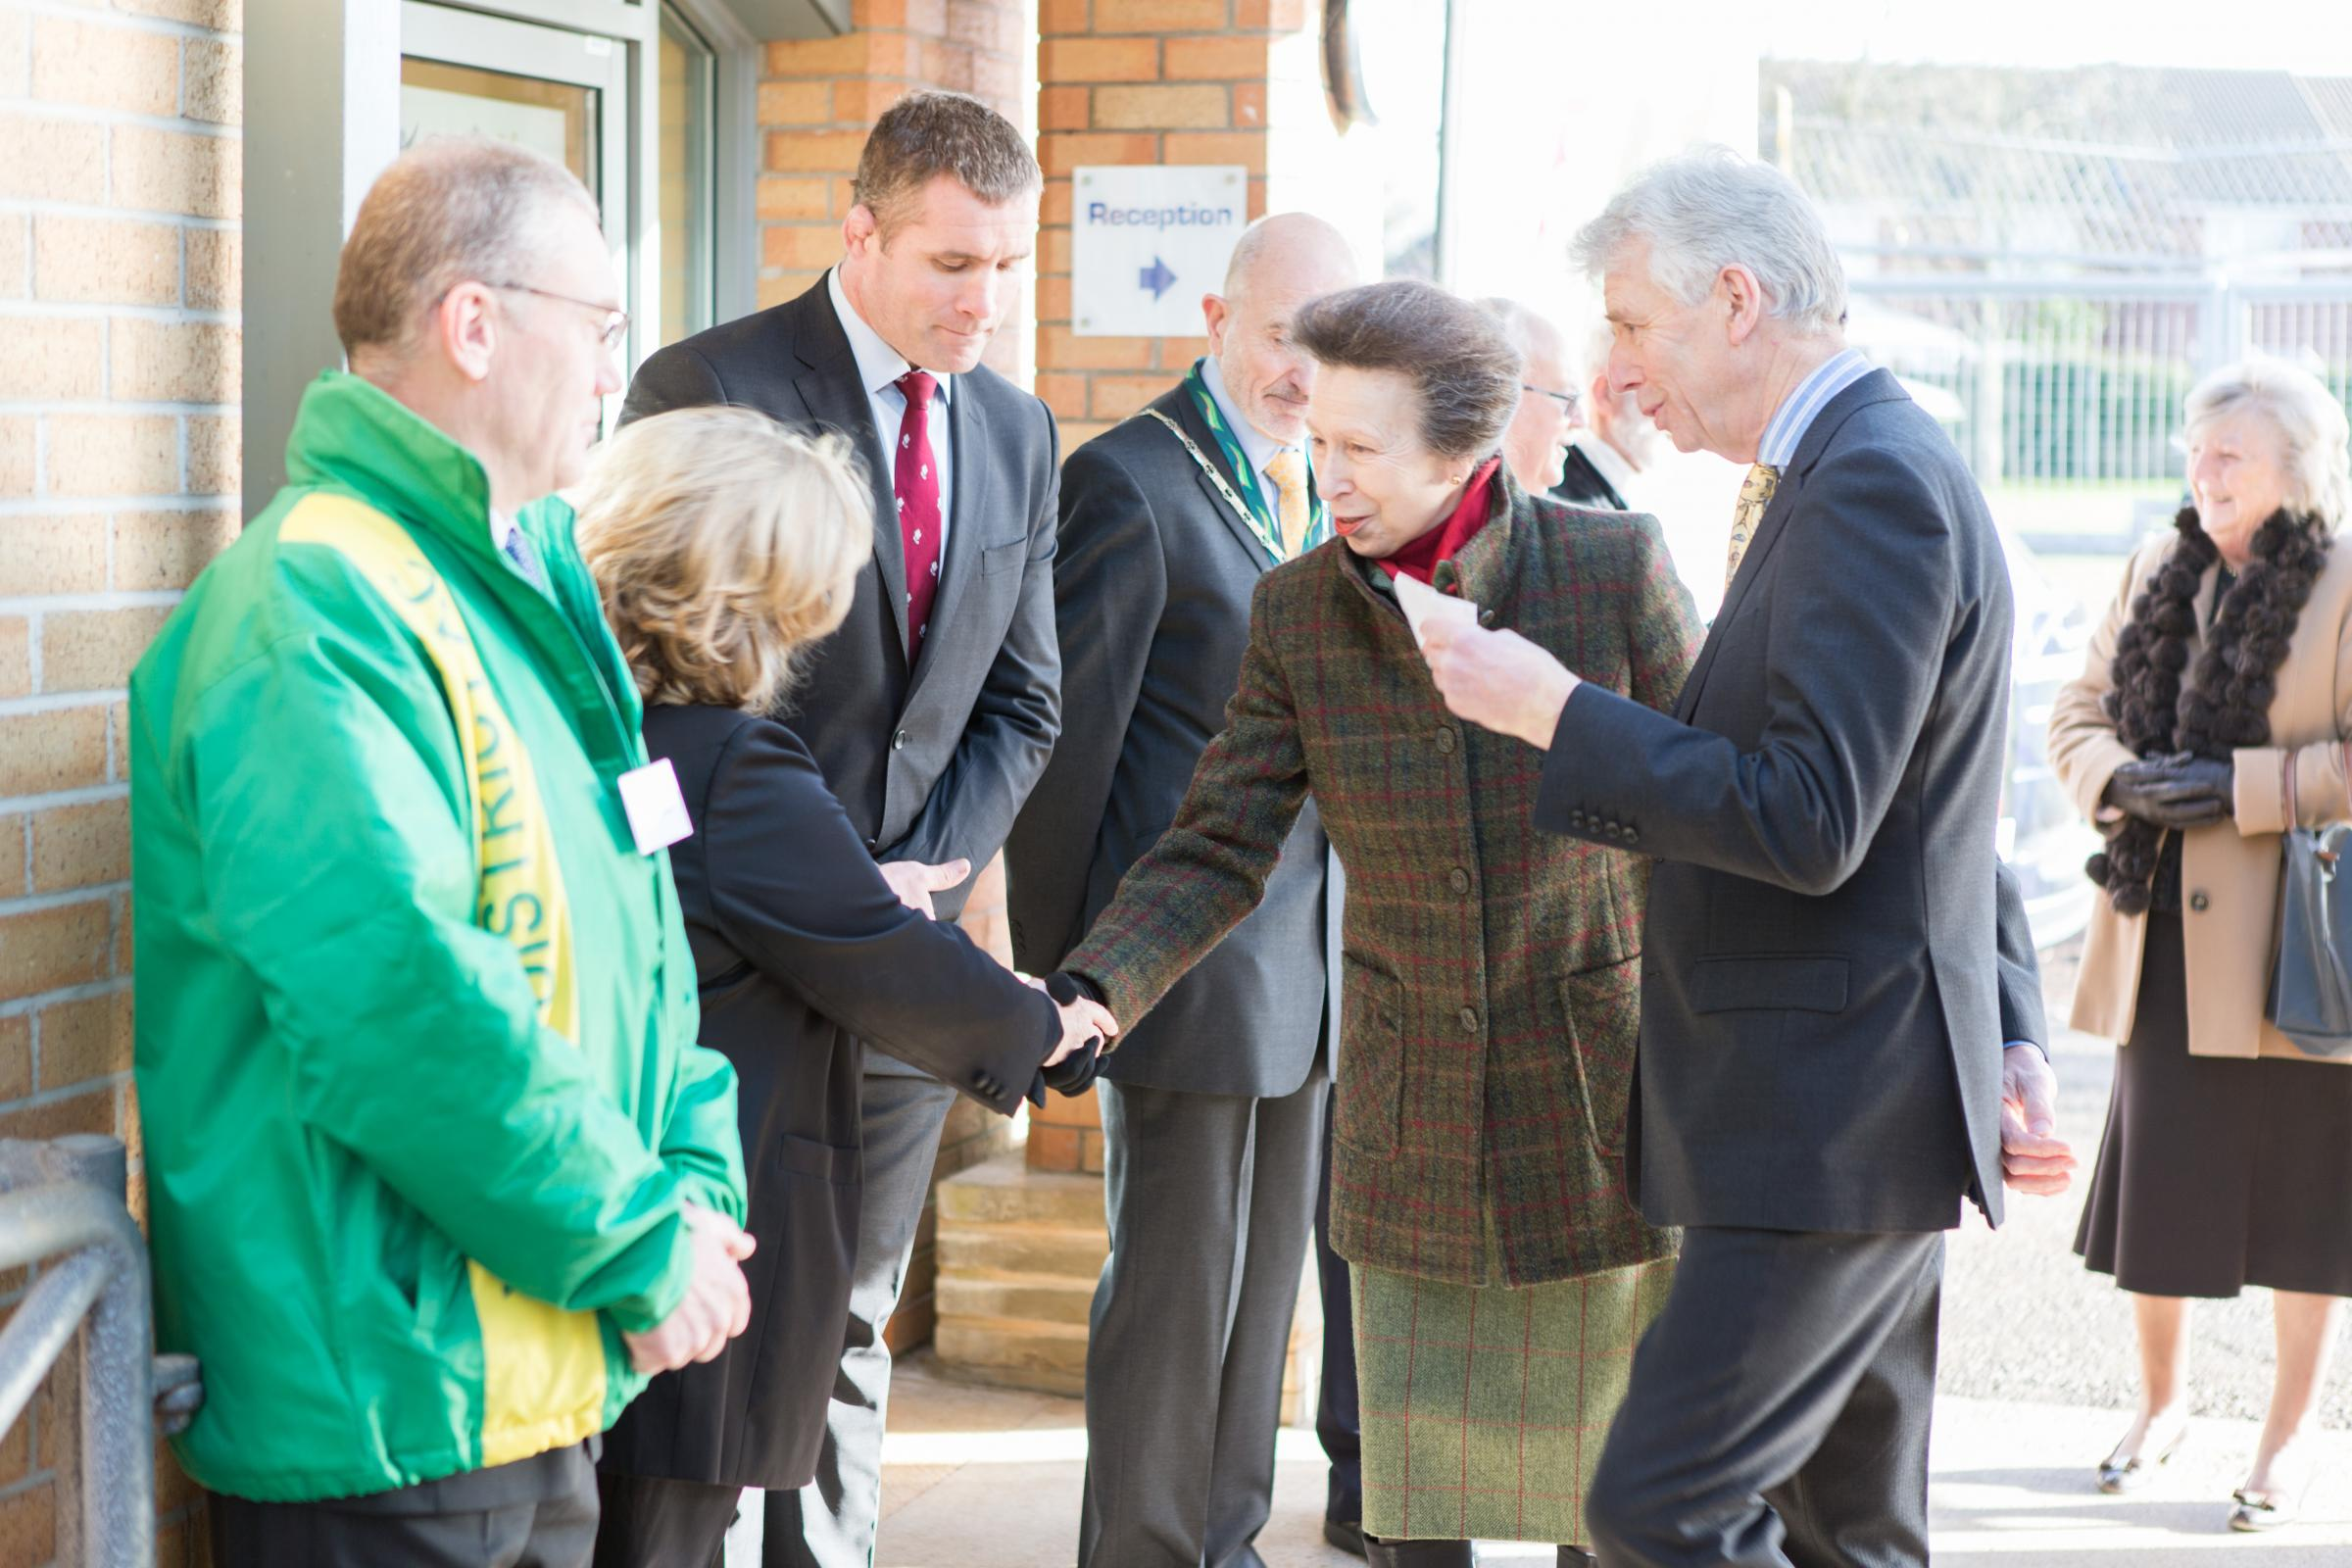 Princess Anne during her visit to Yate Outdoor Sports Complex this week/ Picture by Rich McD and Sue Swanborough